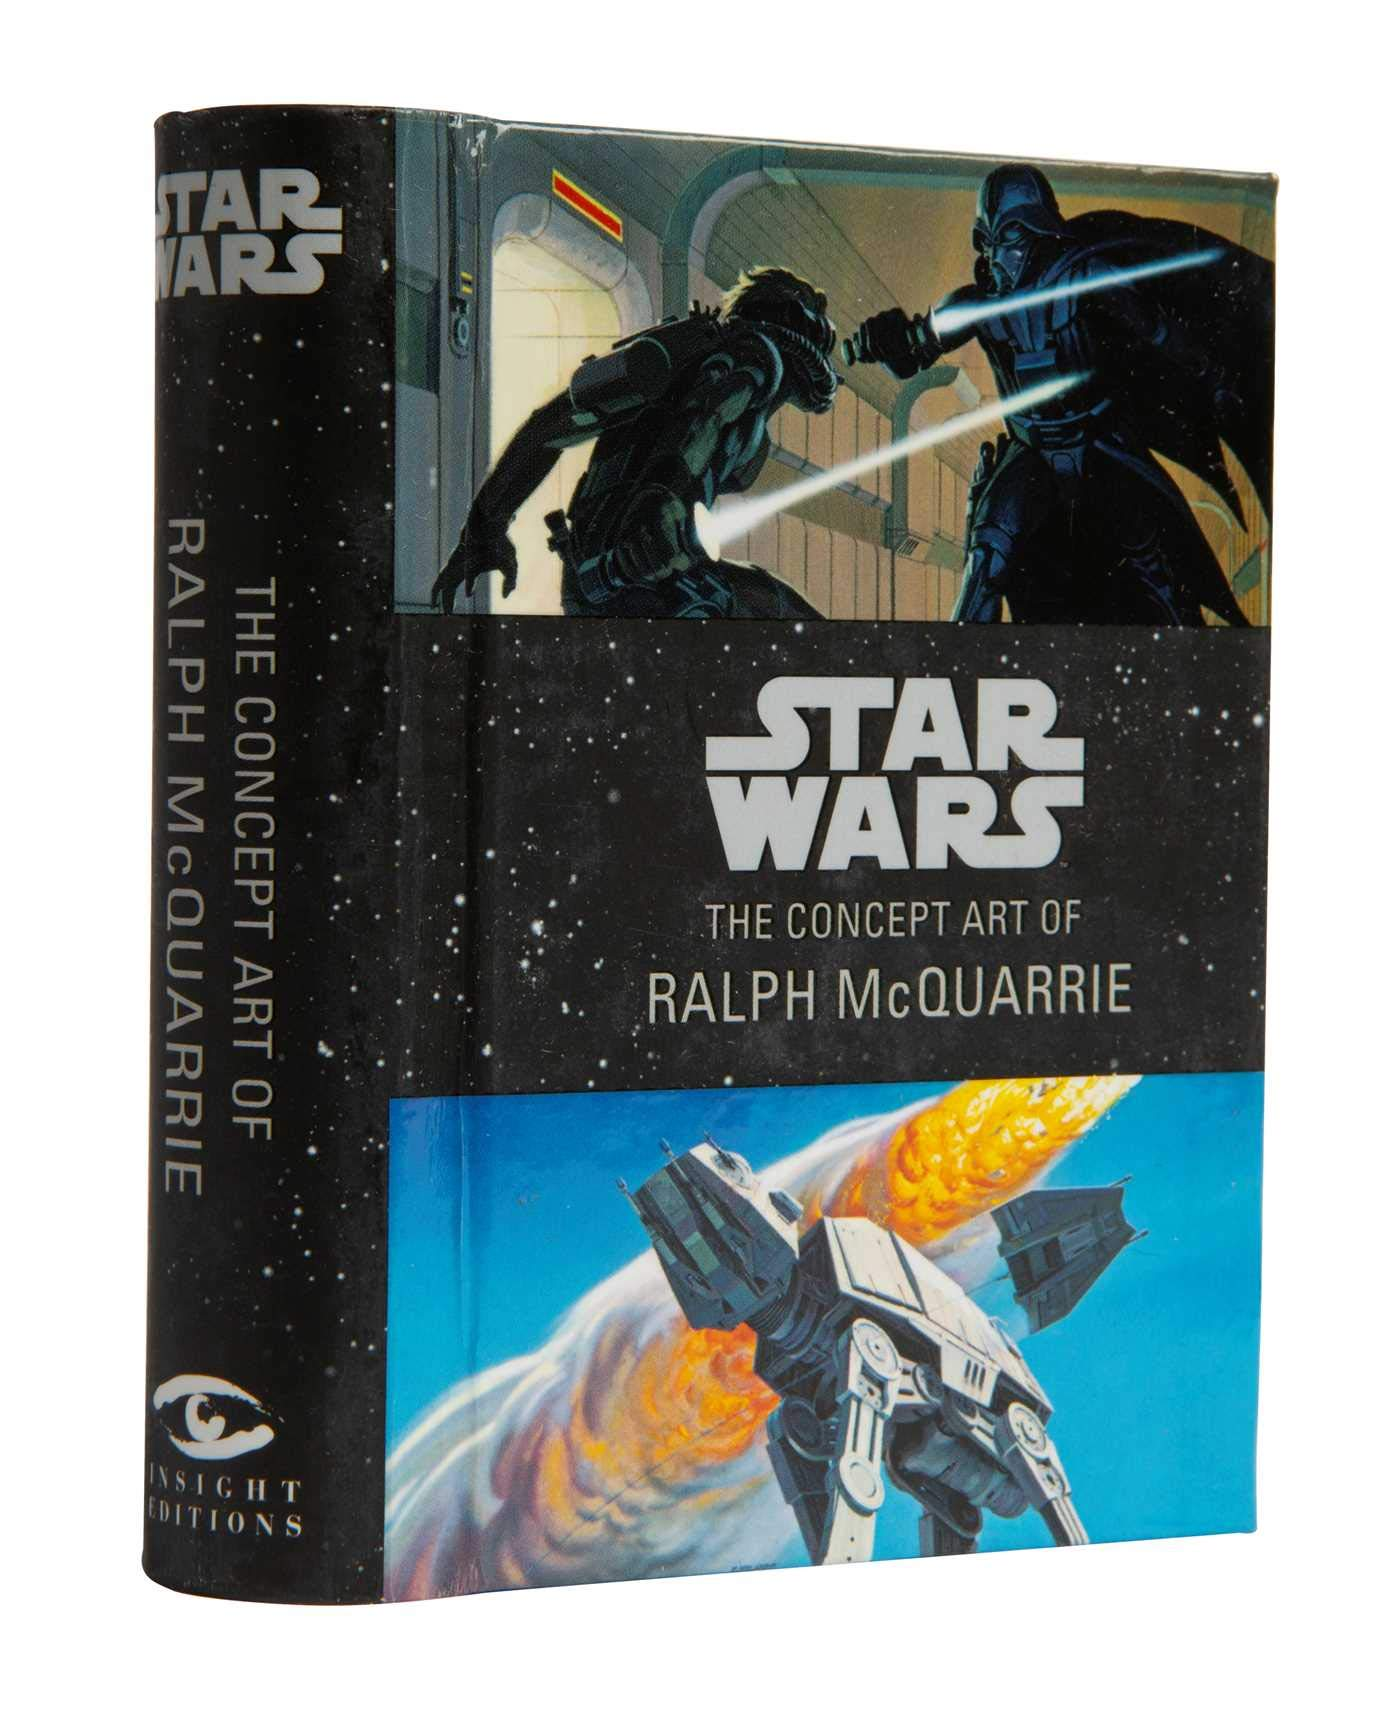 Star Wars: The Concept Art of Ralph McQuarrie Mini Book (Inglés) Pasta dura